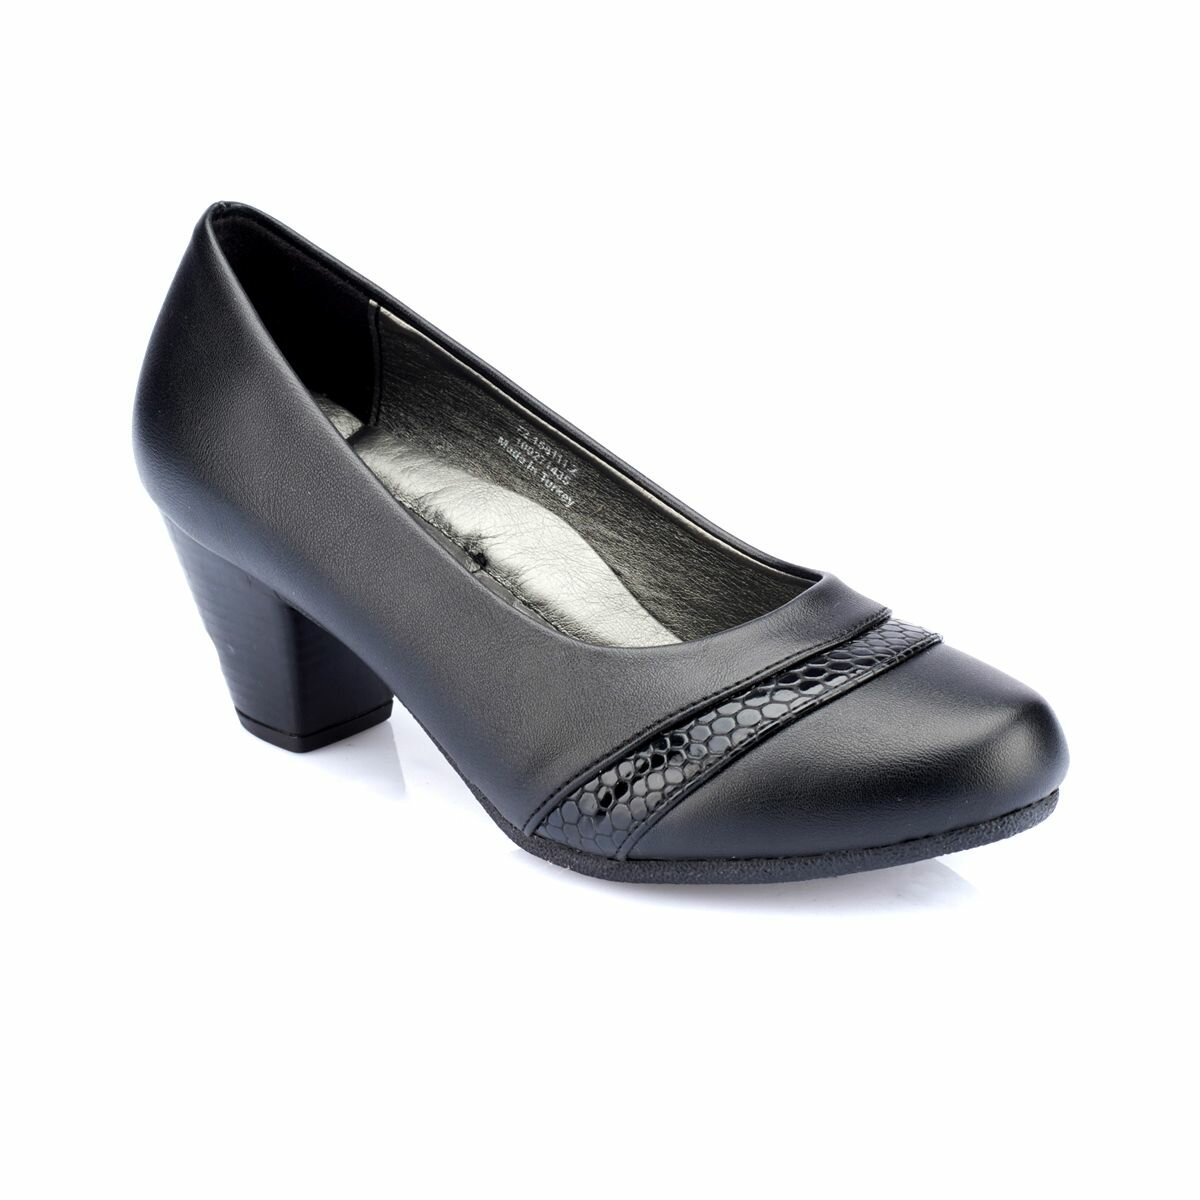 FLO 82.158111.Z Black Women Shoes Polaris